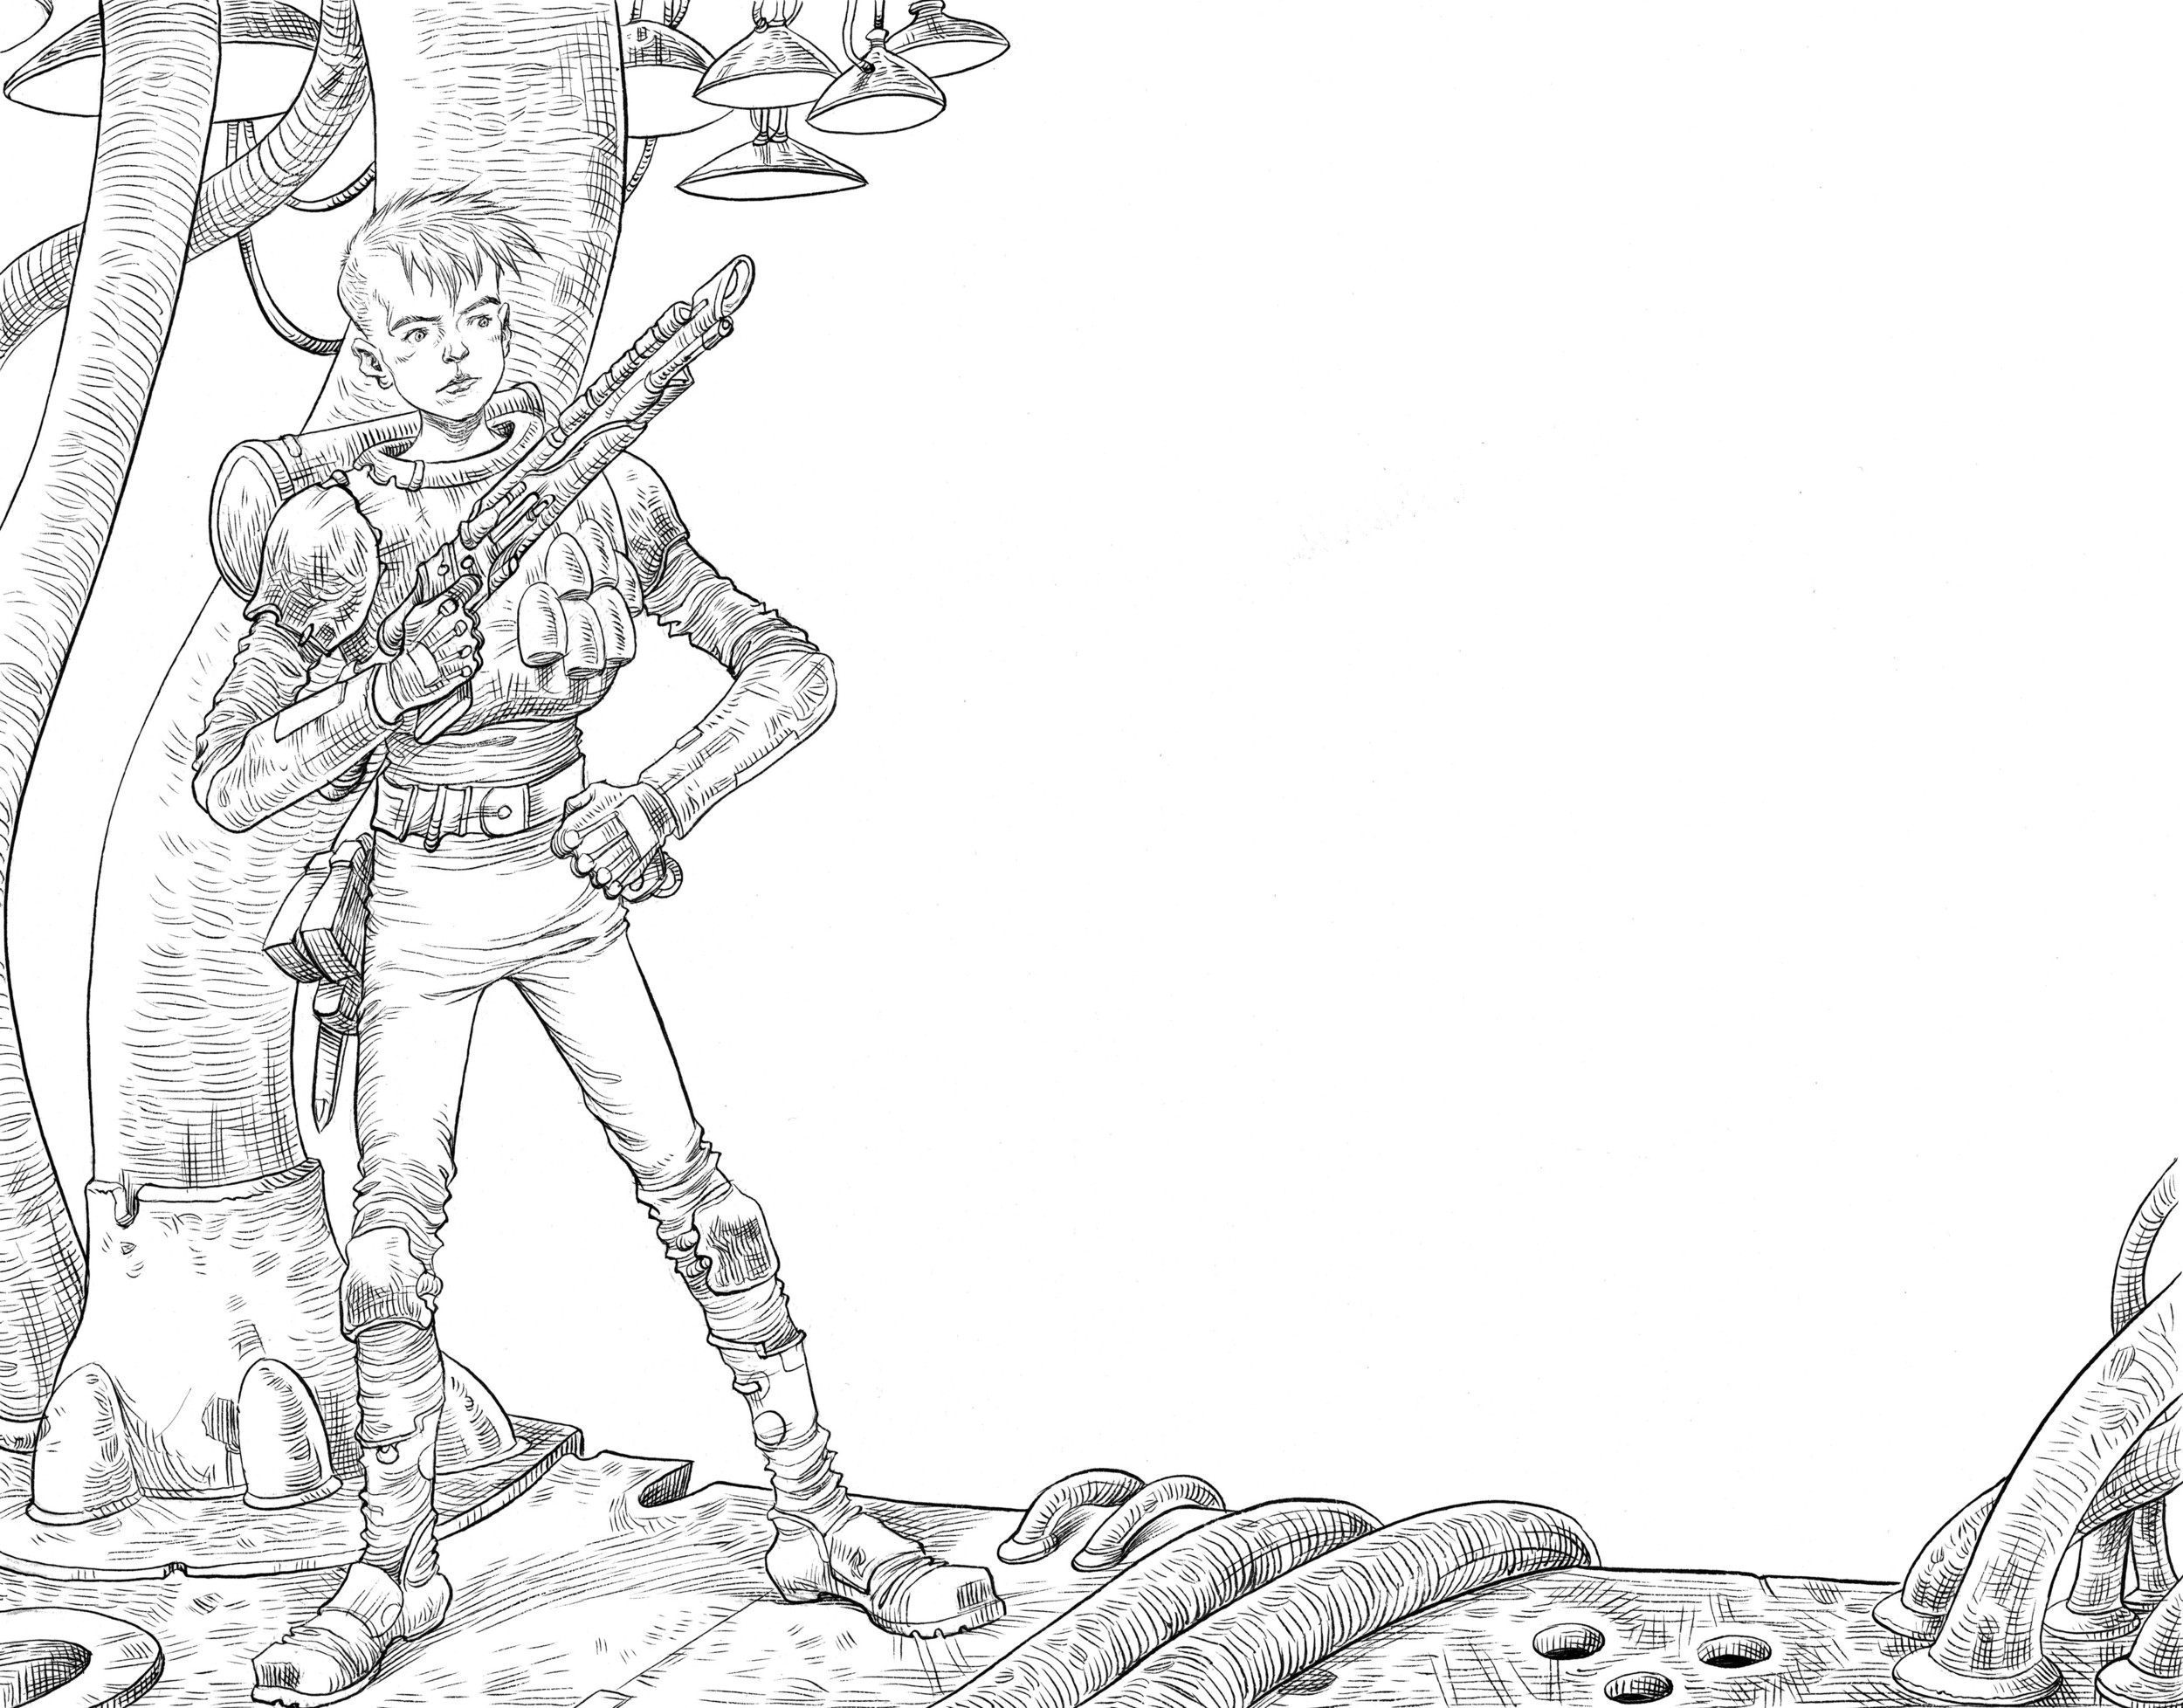 Introducing the hero of the Scavenger series, York © Chris Riddell 2014, taken from Scavenger: Zoid